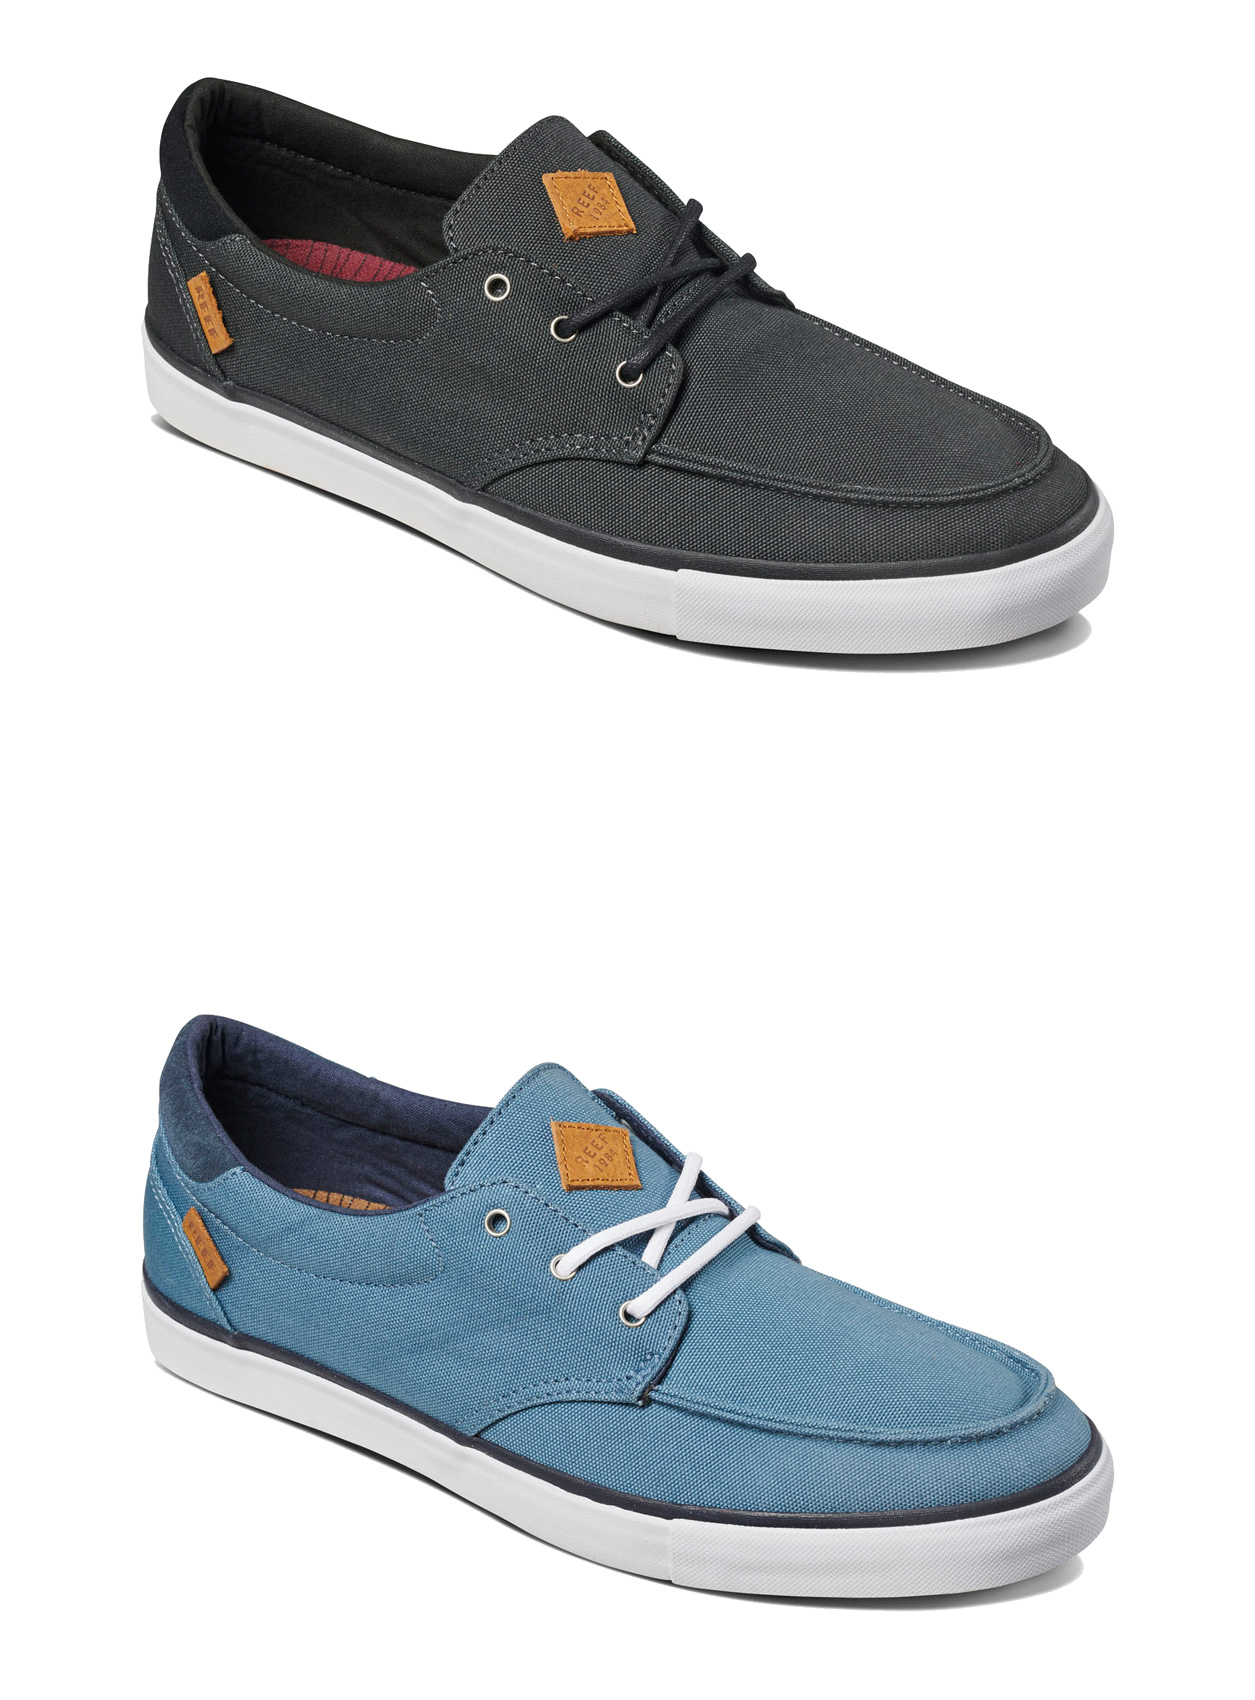 efd1e5a99bbb Details about Reef Surf Style Shoes - Deckhand 3 - Black White